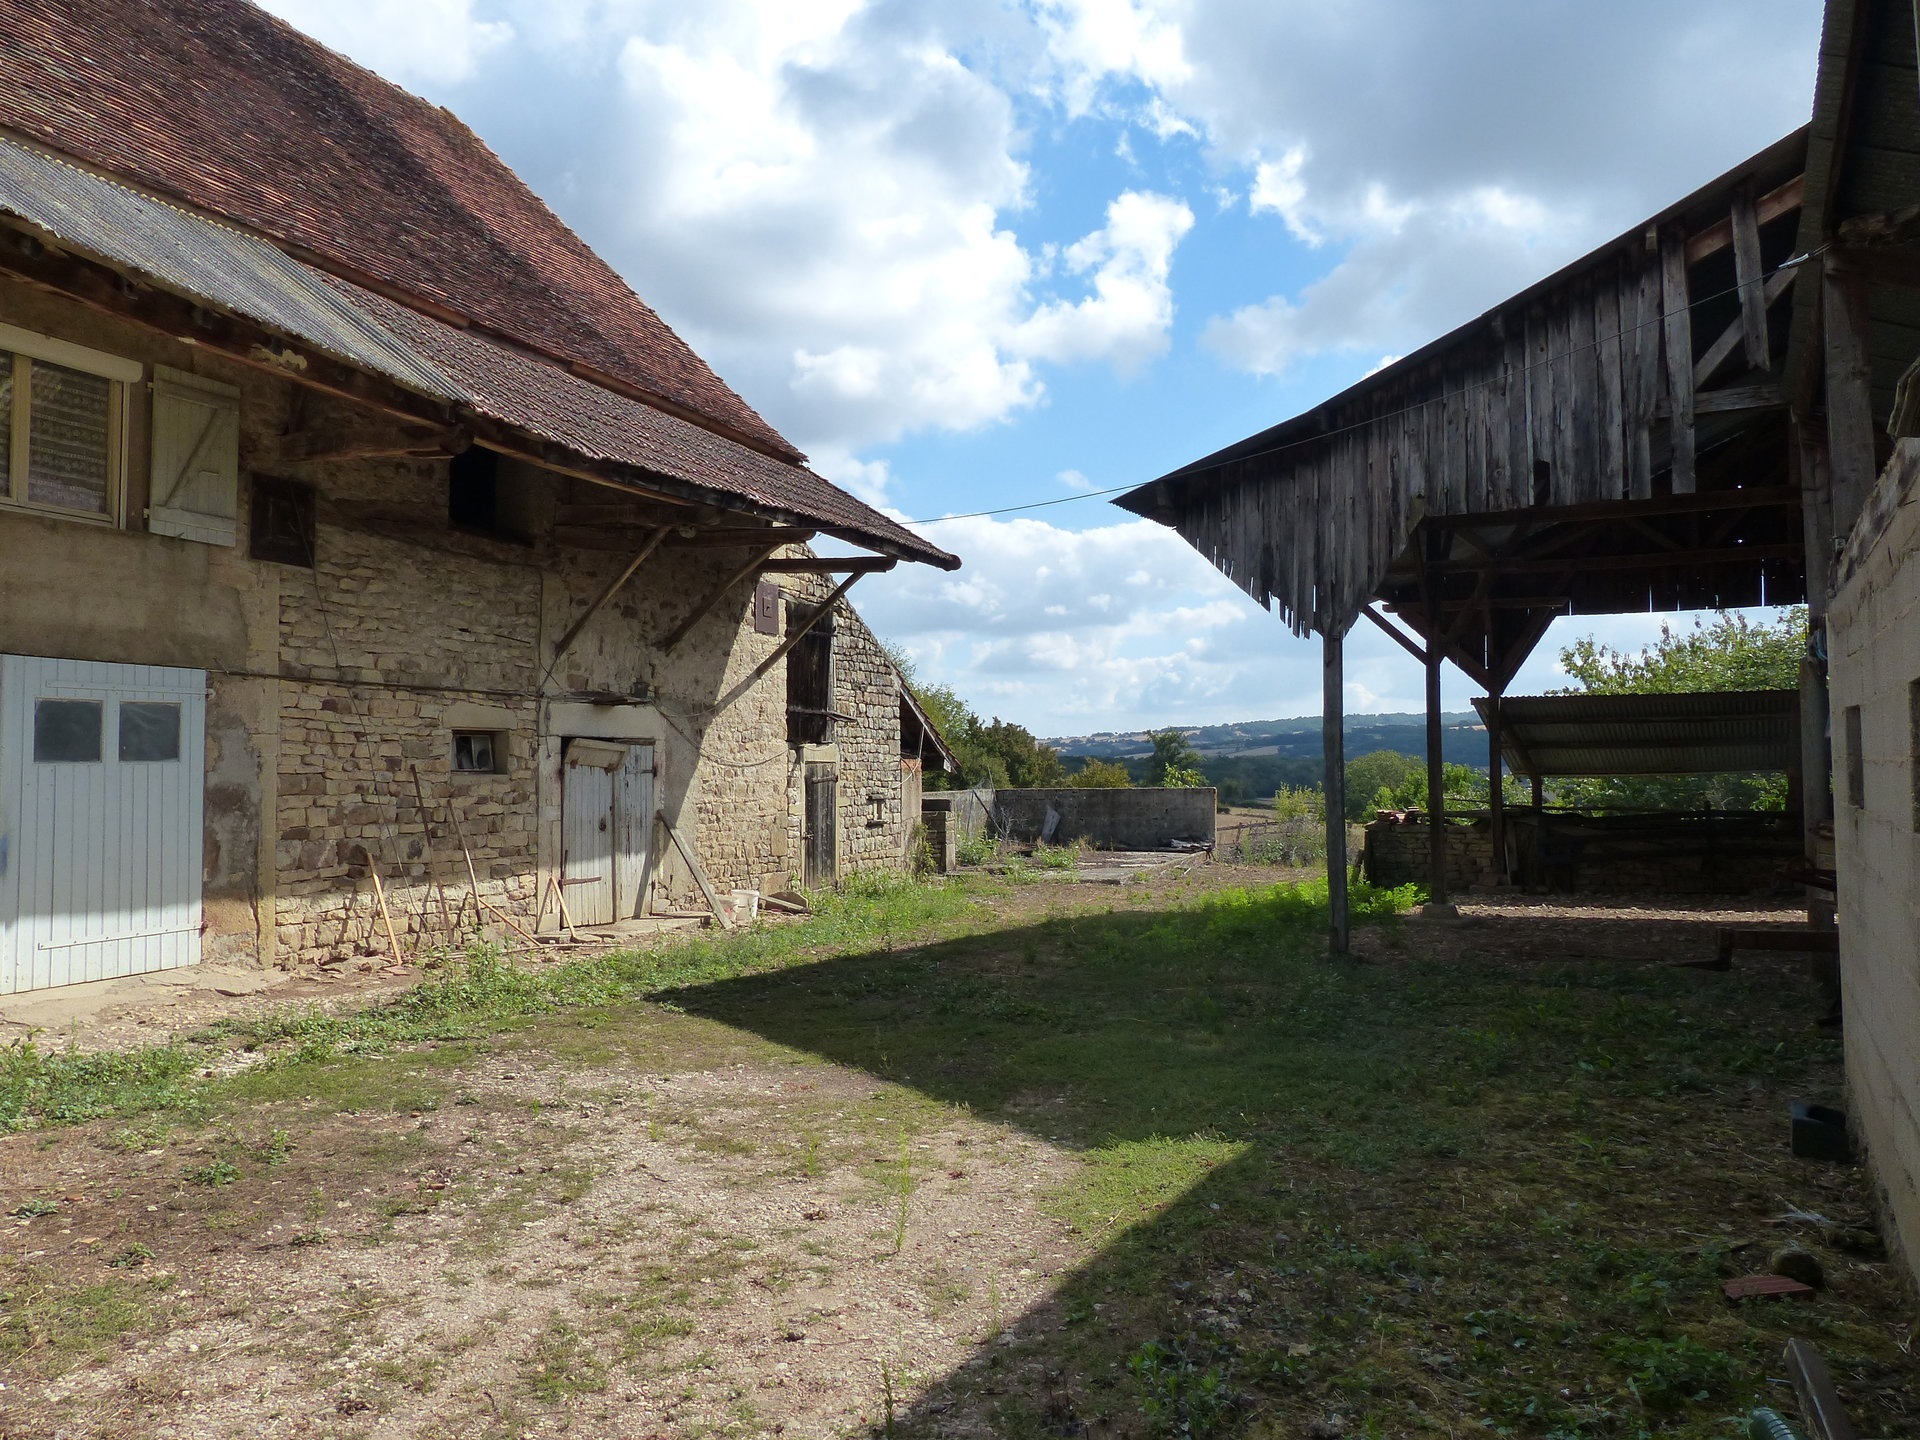 PROCHE GENOUILLY - AGREABLE FERMETTE SUR 3 HECTARES